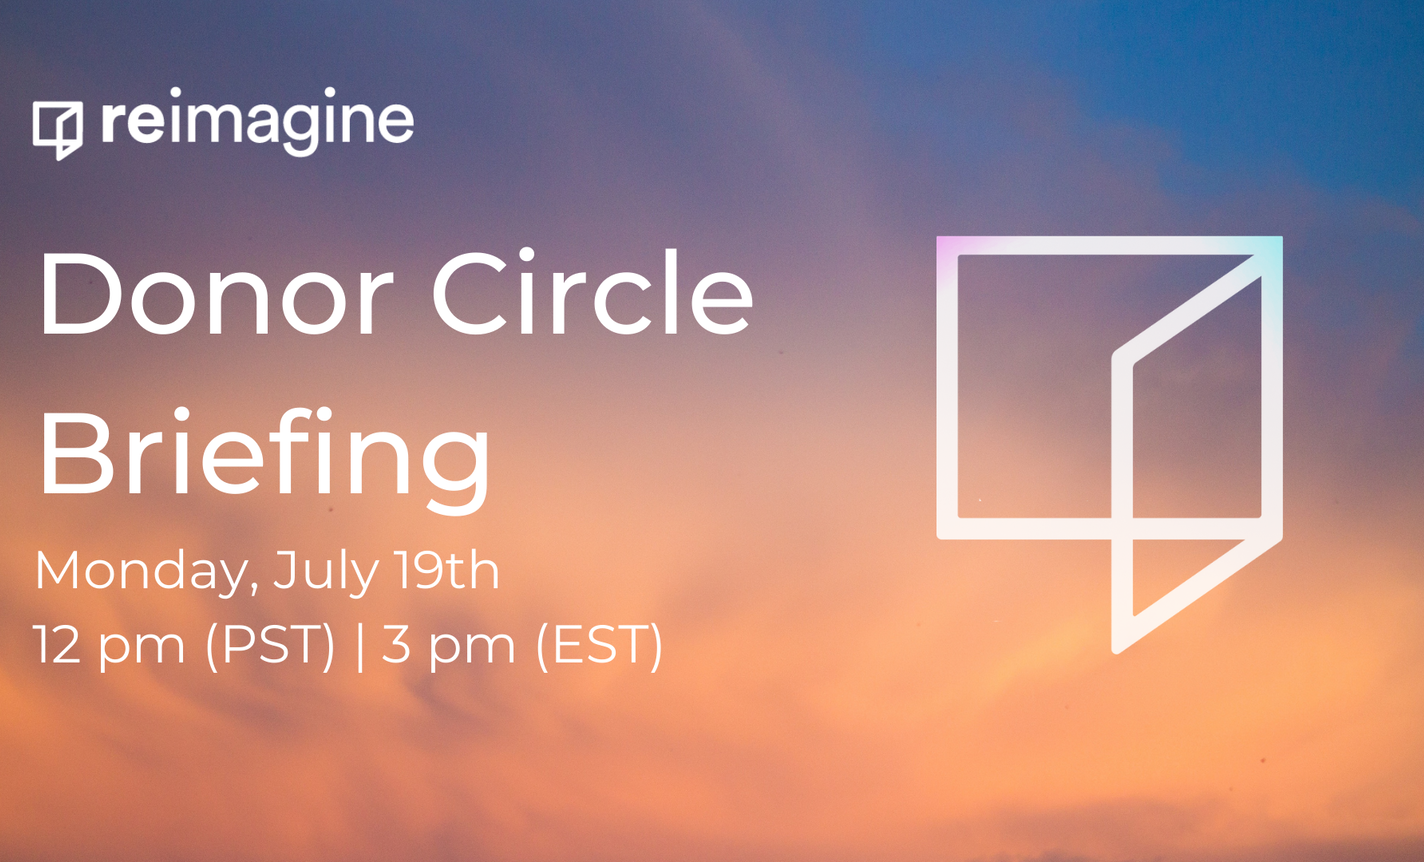 Reimagine's Donor Circle Briefing on 7/19